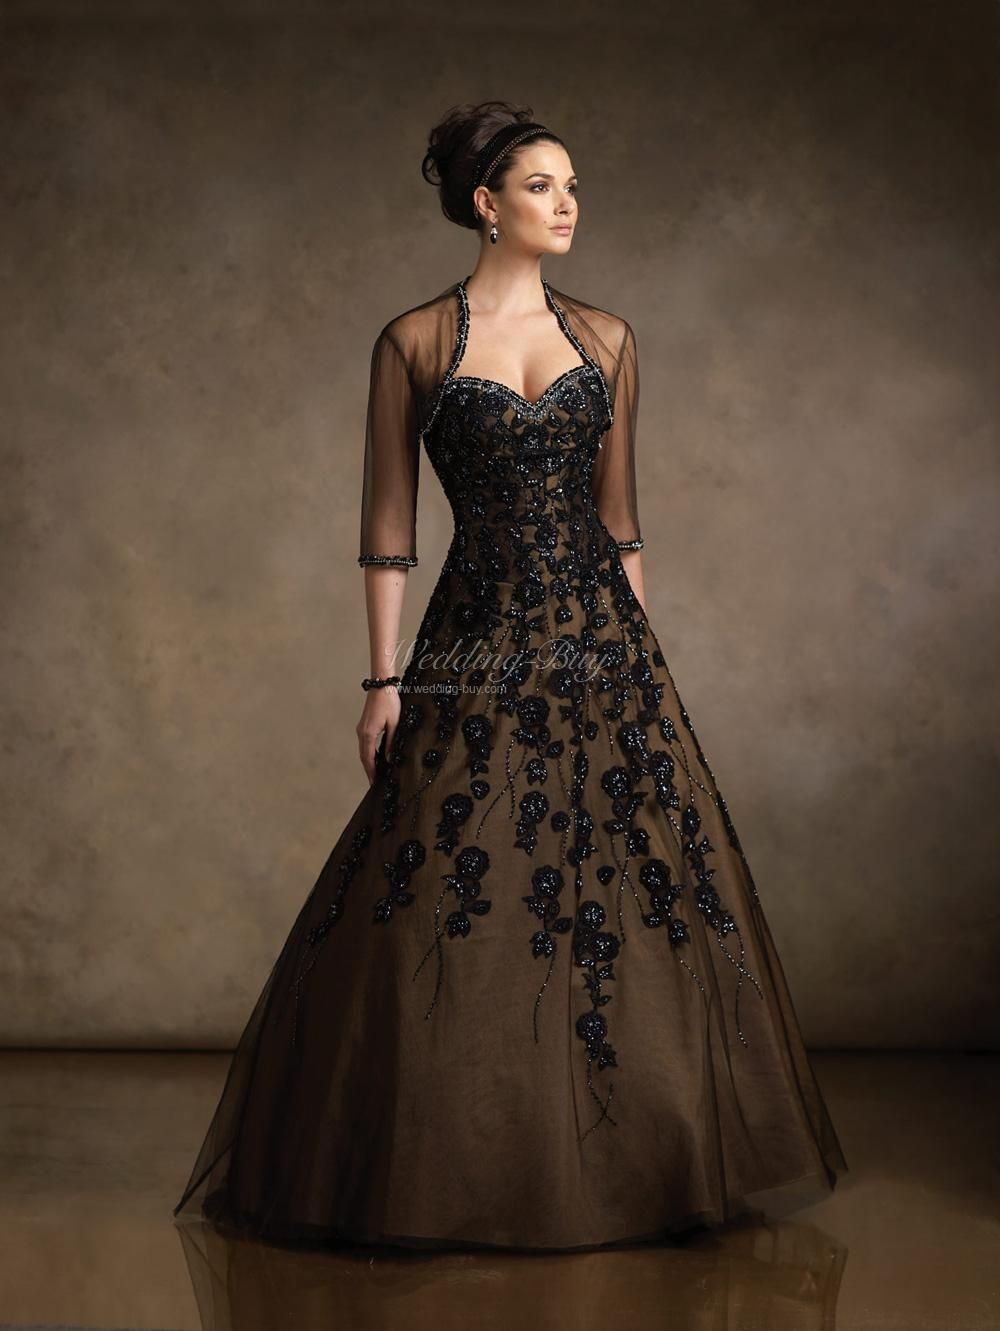 Handmade Singapore Wedding Gowns Mother Of The Bride Black Lace Ball Gown Mother Of The Bride Dresses Ball Gowns